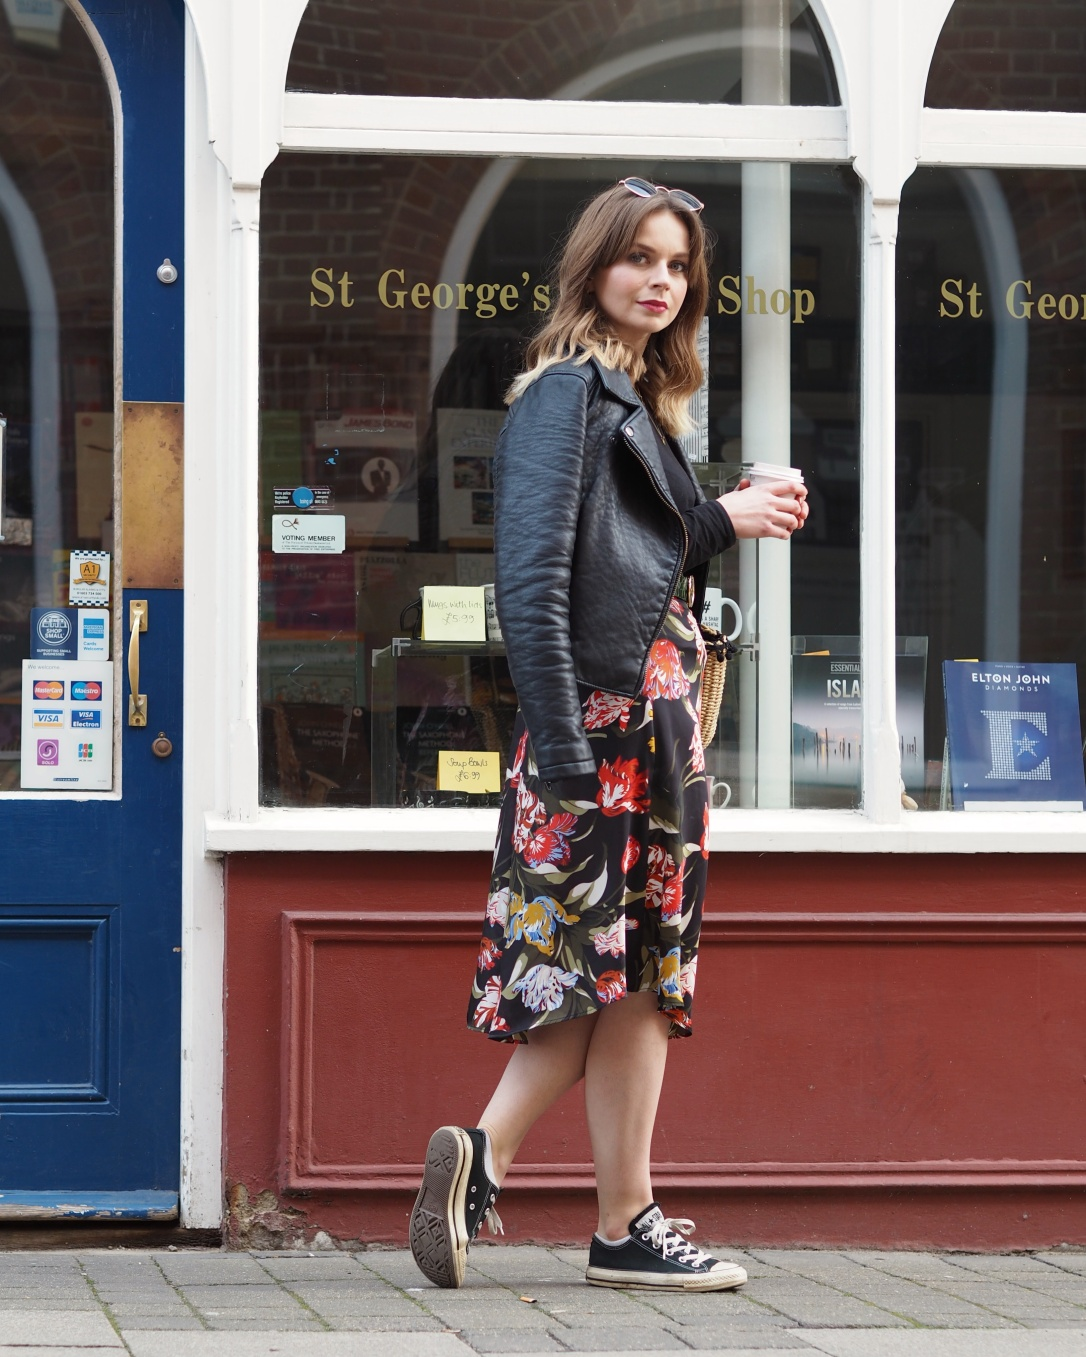 Winter to spring transitional outfit ideas